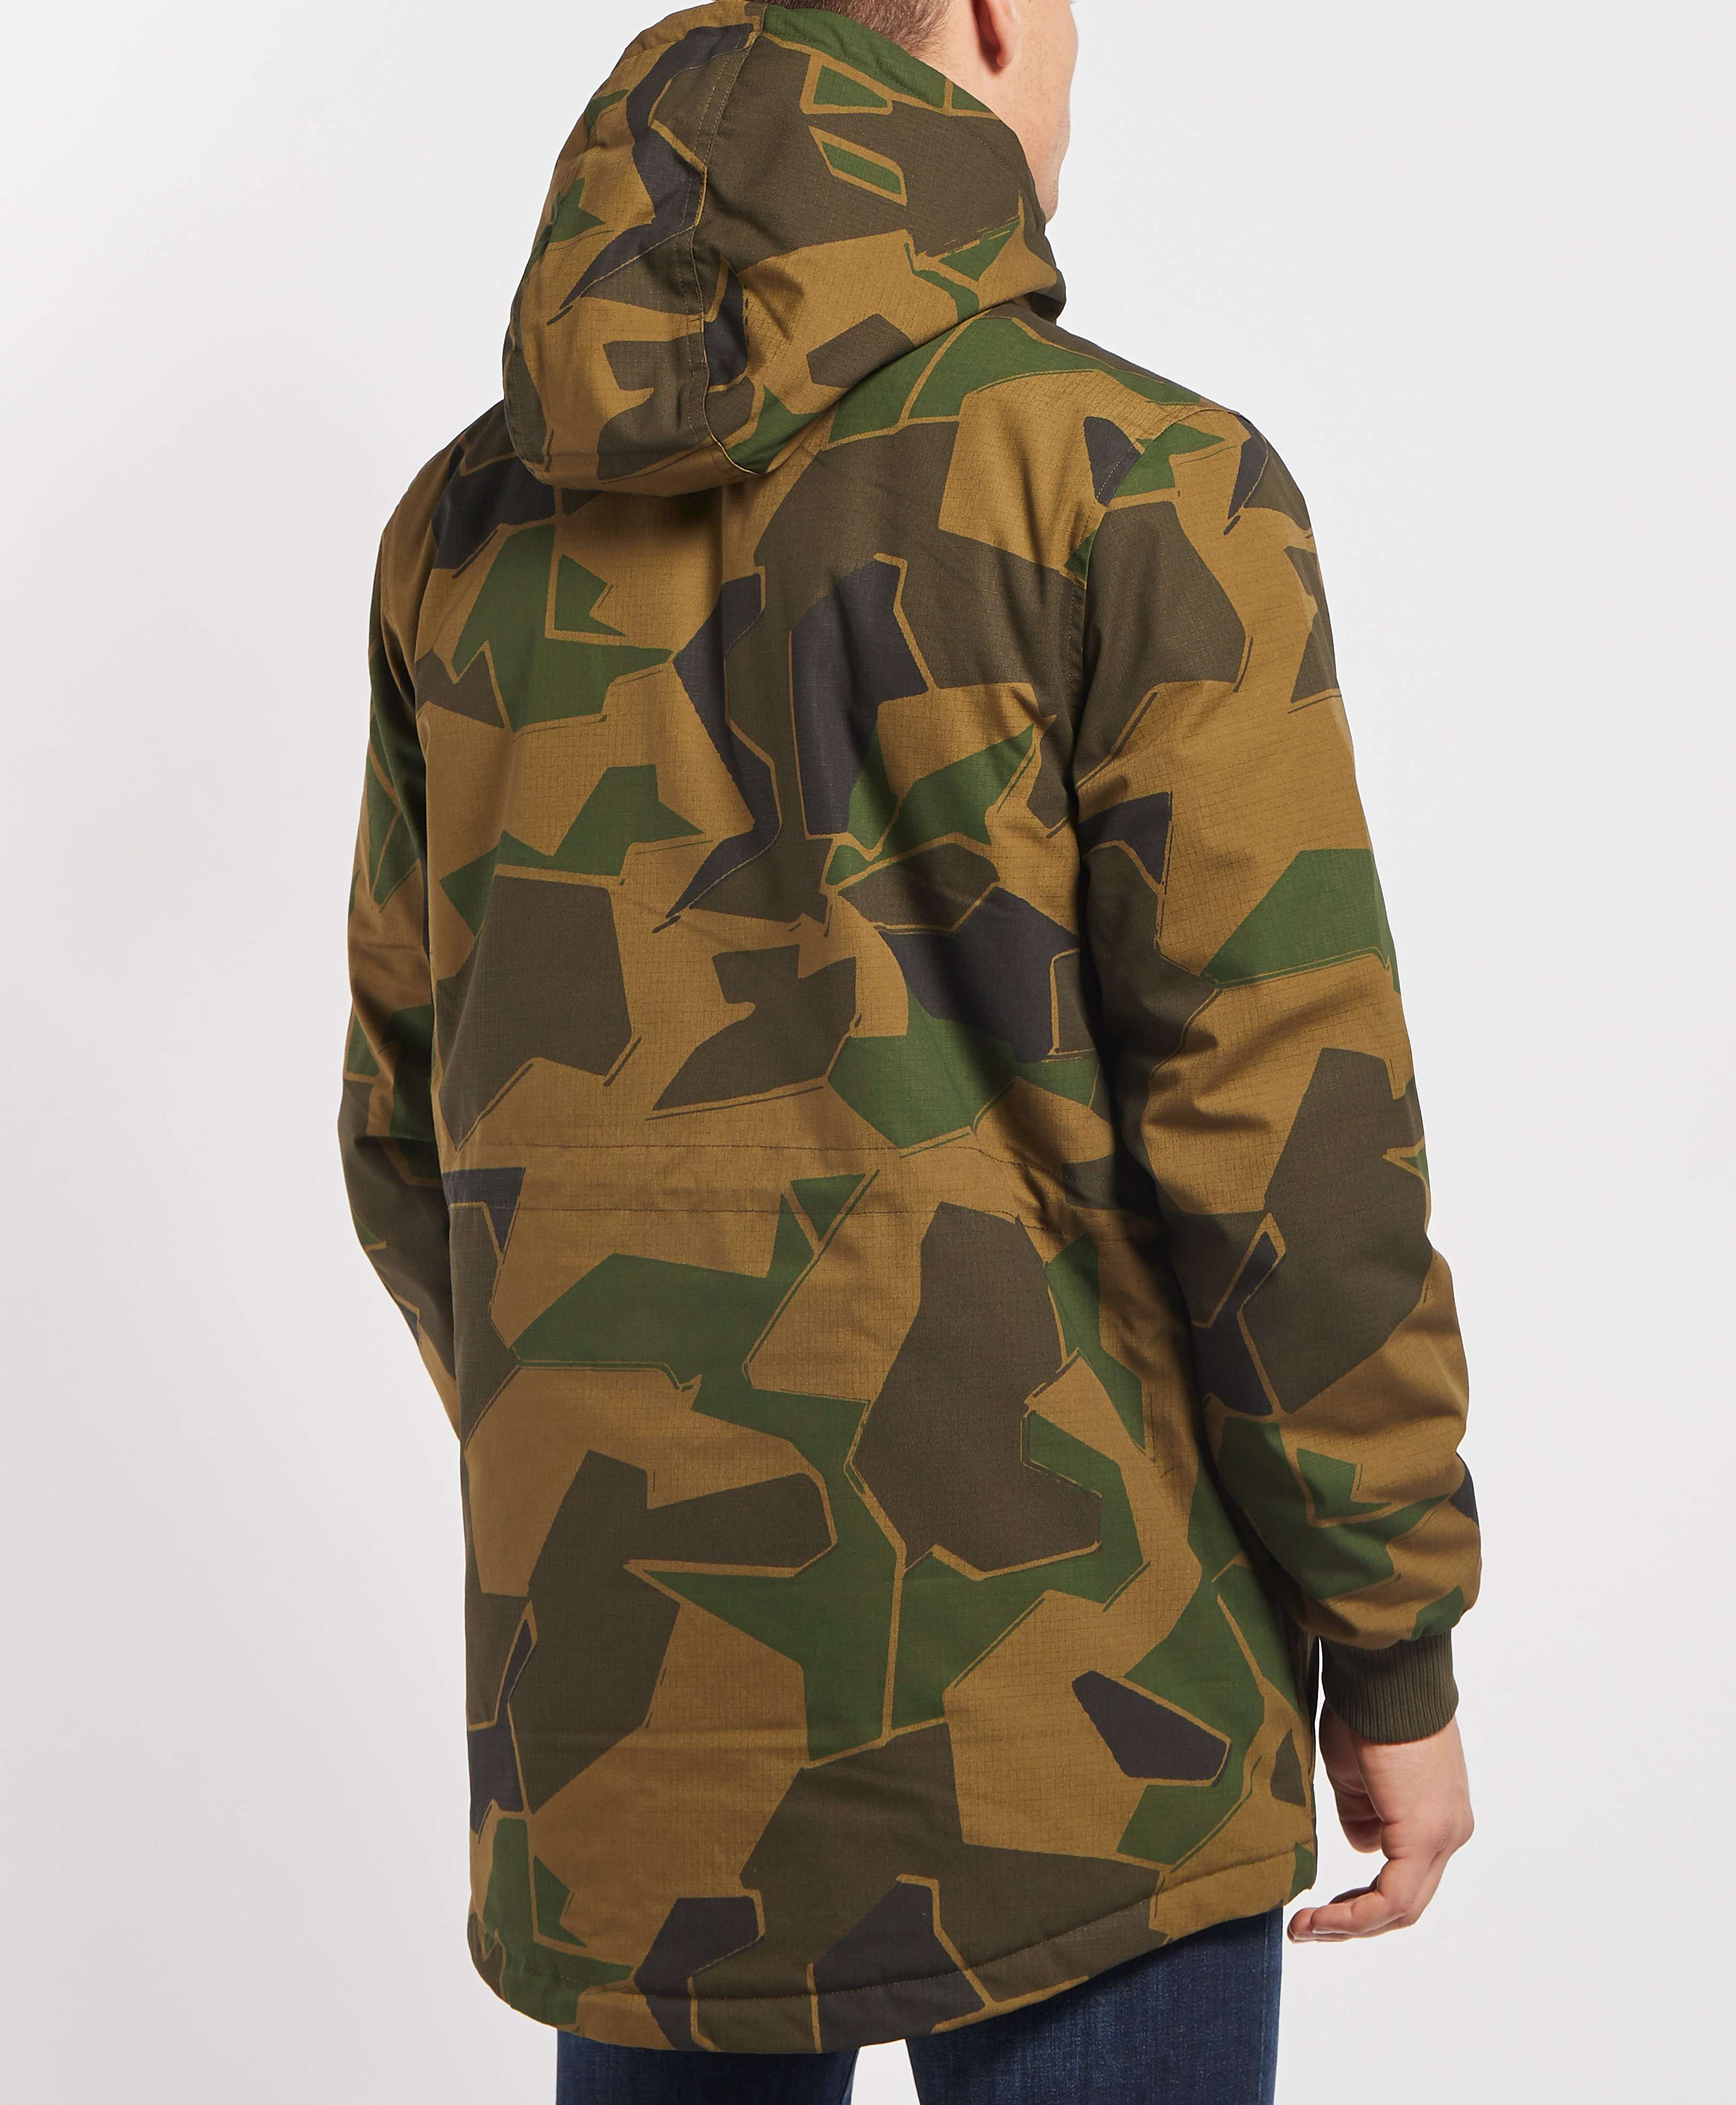 Fred Perry x Arktis Stockport Camo Jacket